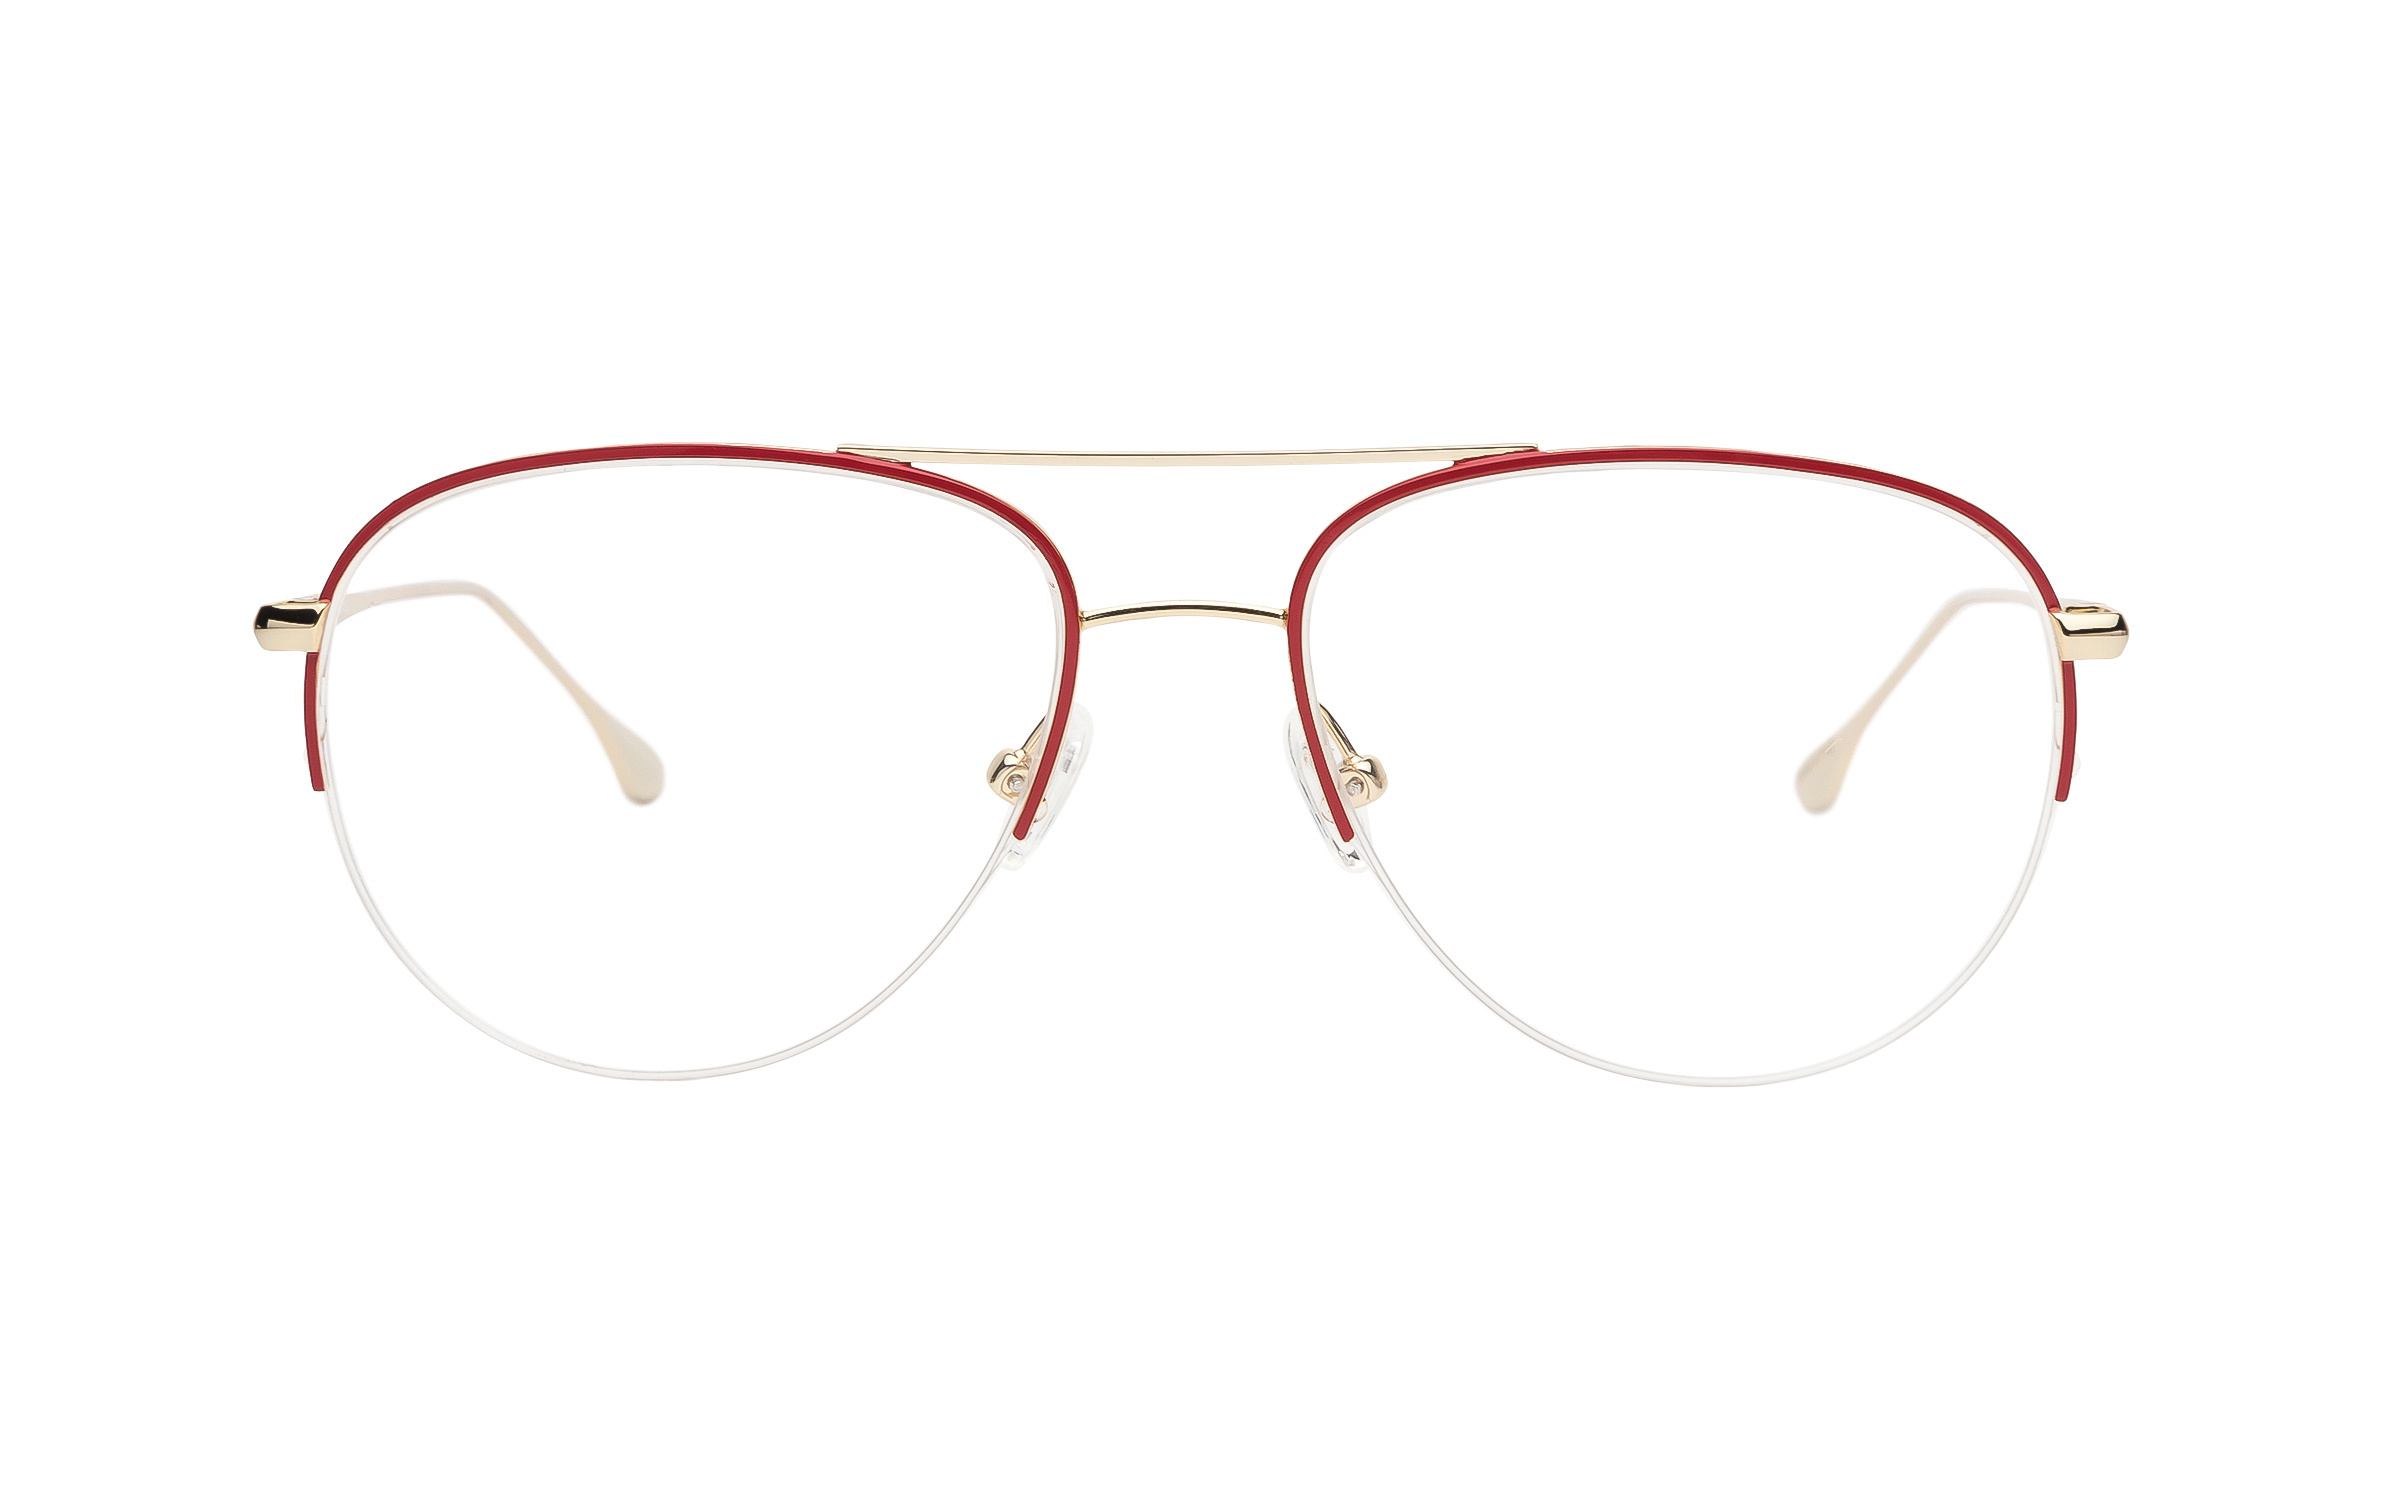 Joseph Marc Glasses Vintage Red/Gold Metal Online Clearly